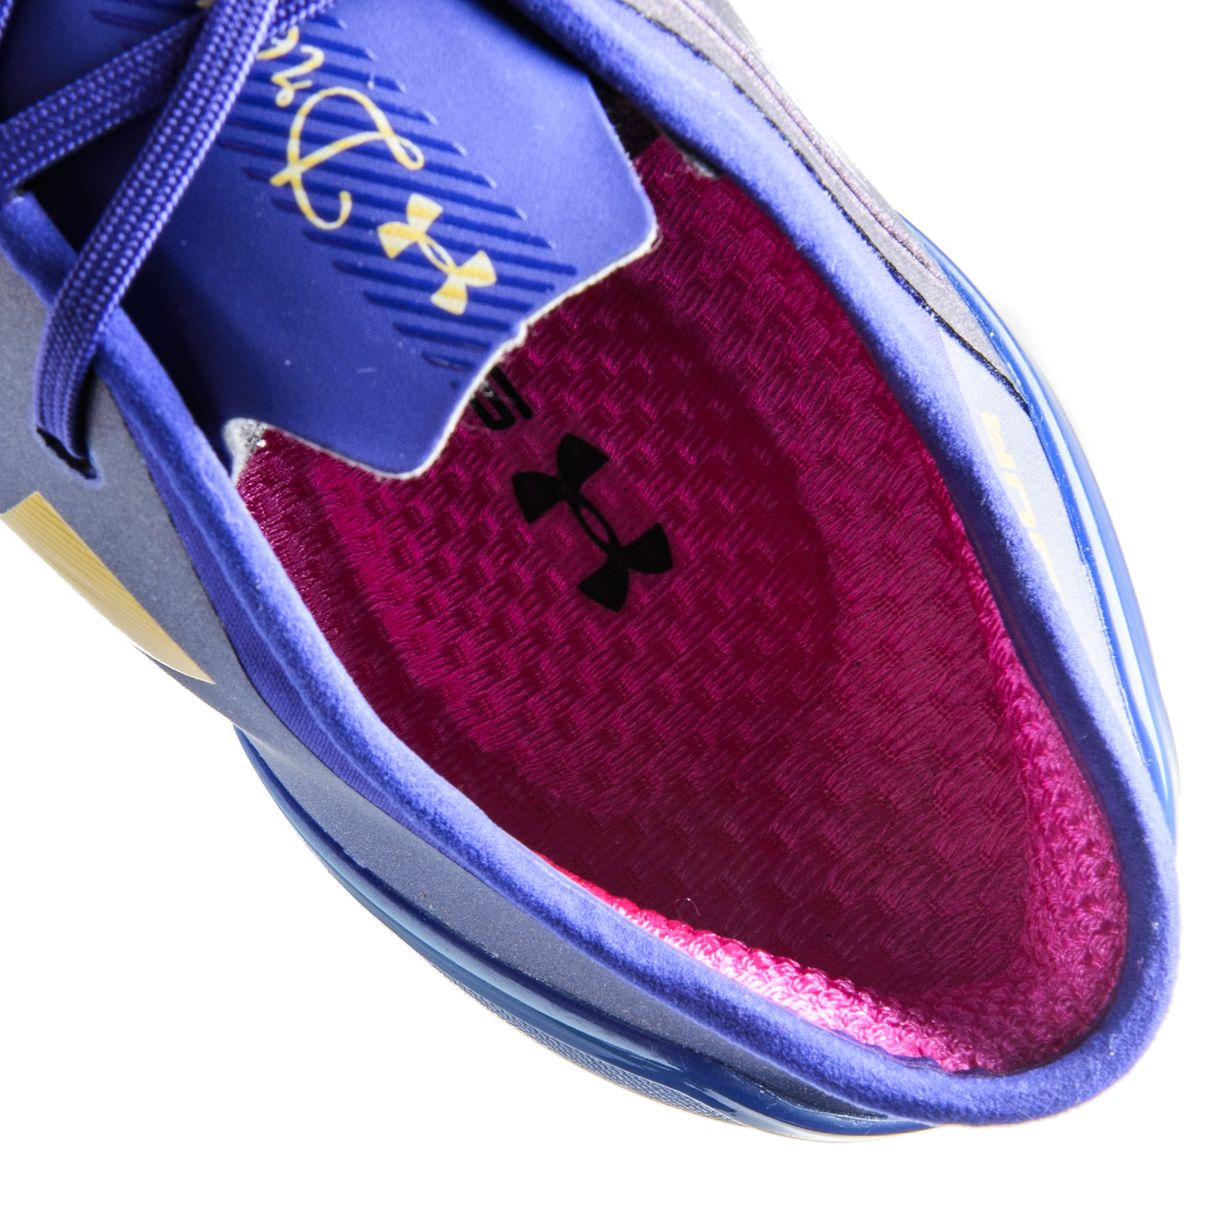 c83b54586a53 ... Click to enlarge image  under_armour_spotlight_dc_fg_dreamchaser_grape_fusion_gold_rush_e.jpg ...